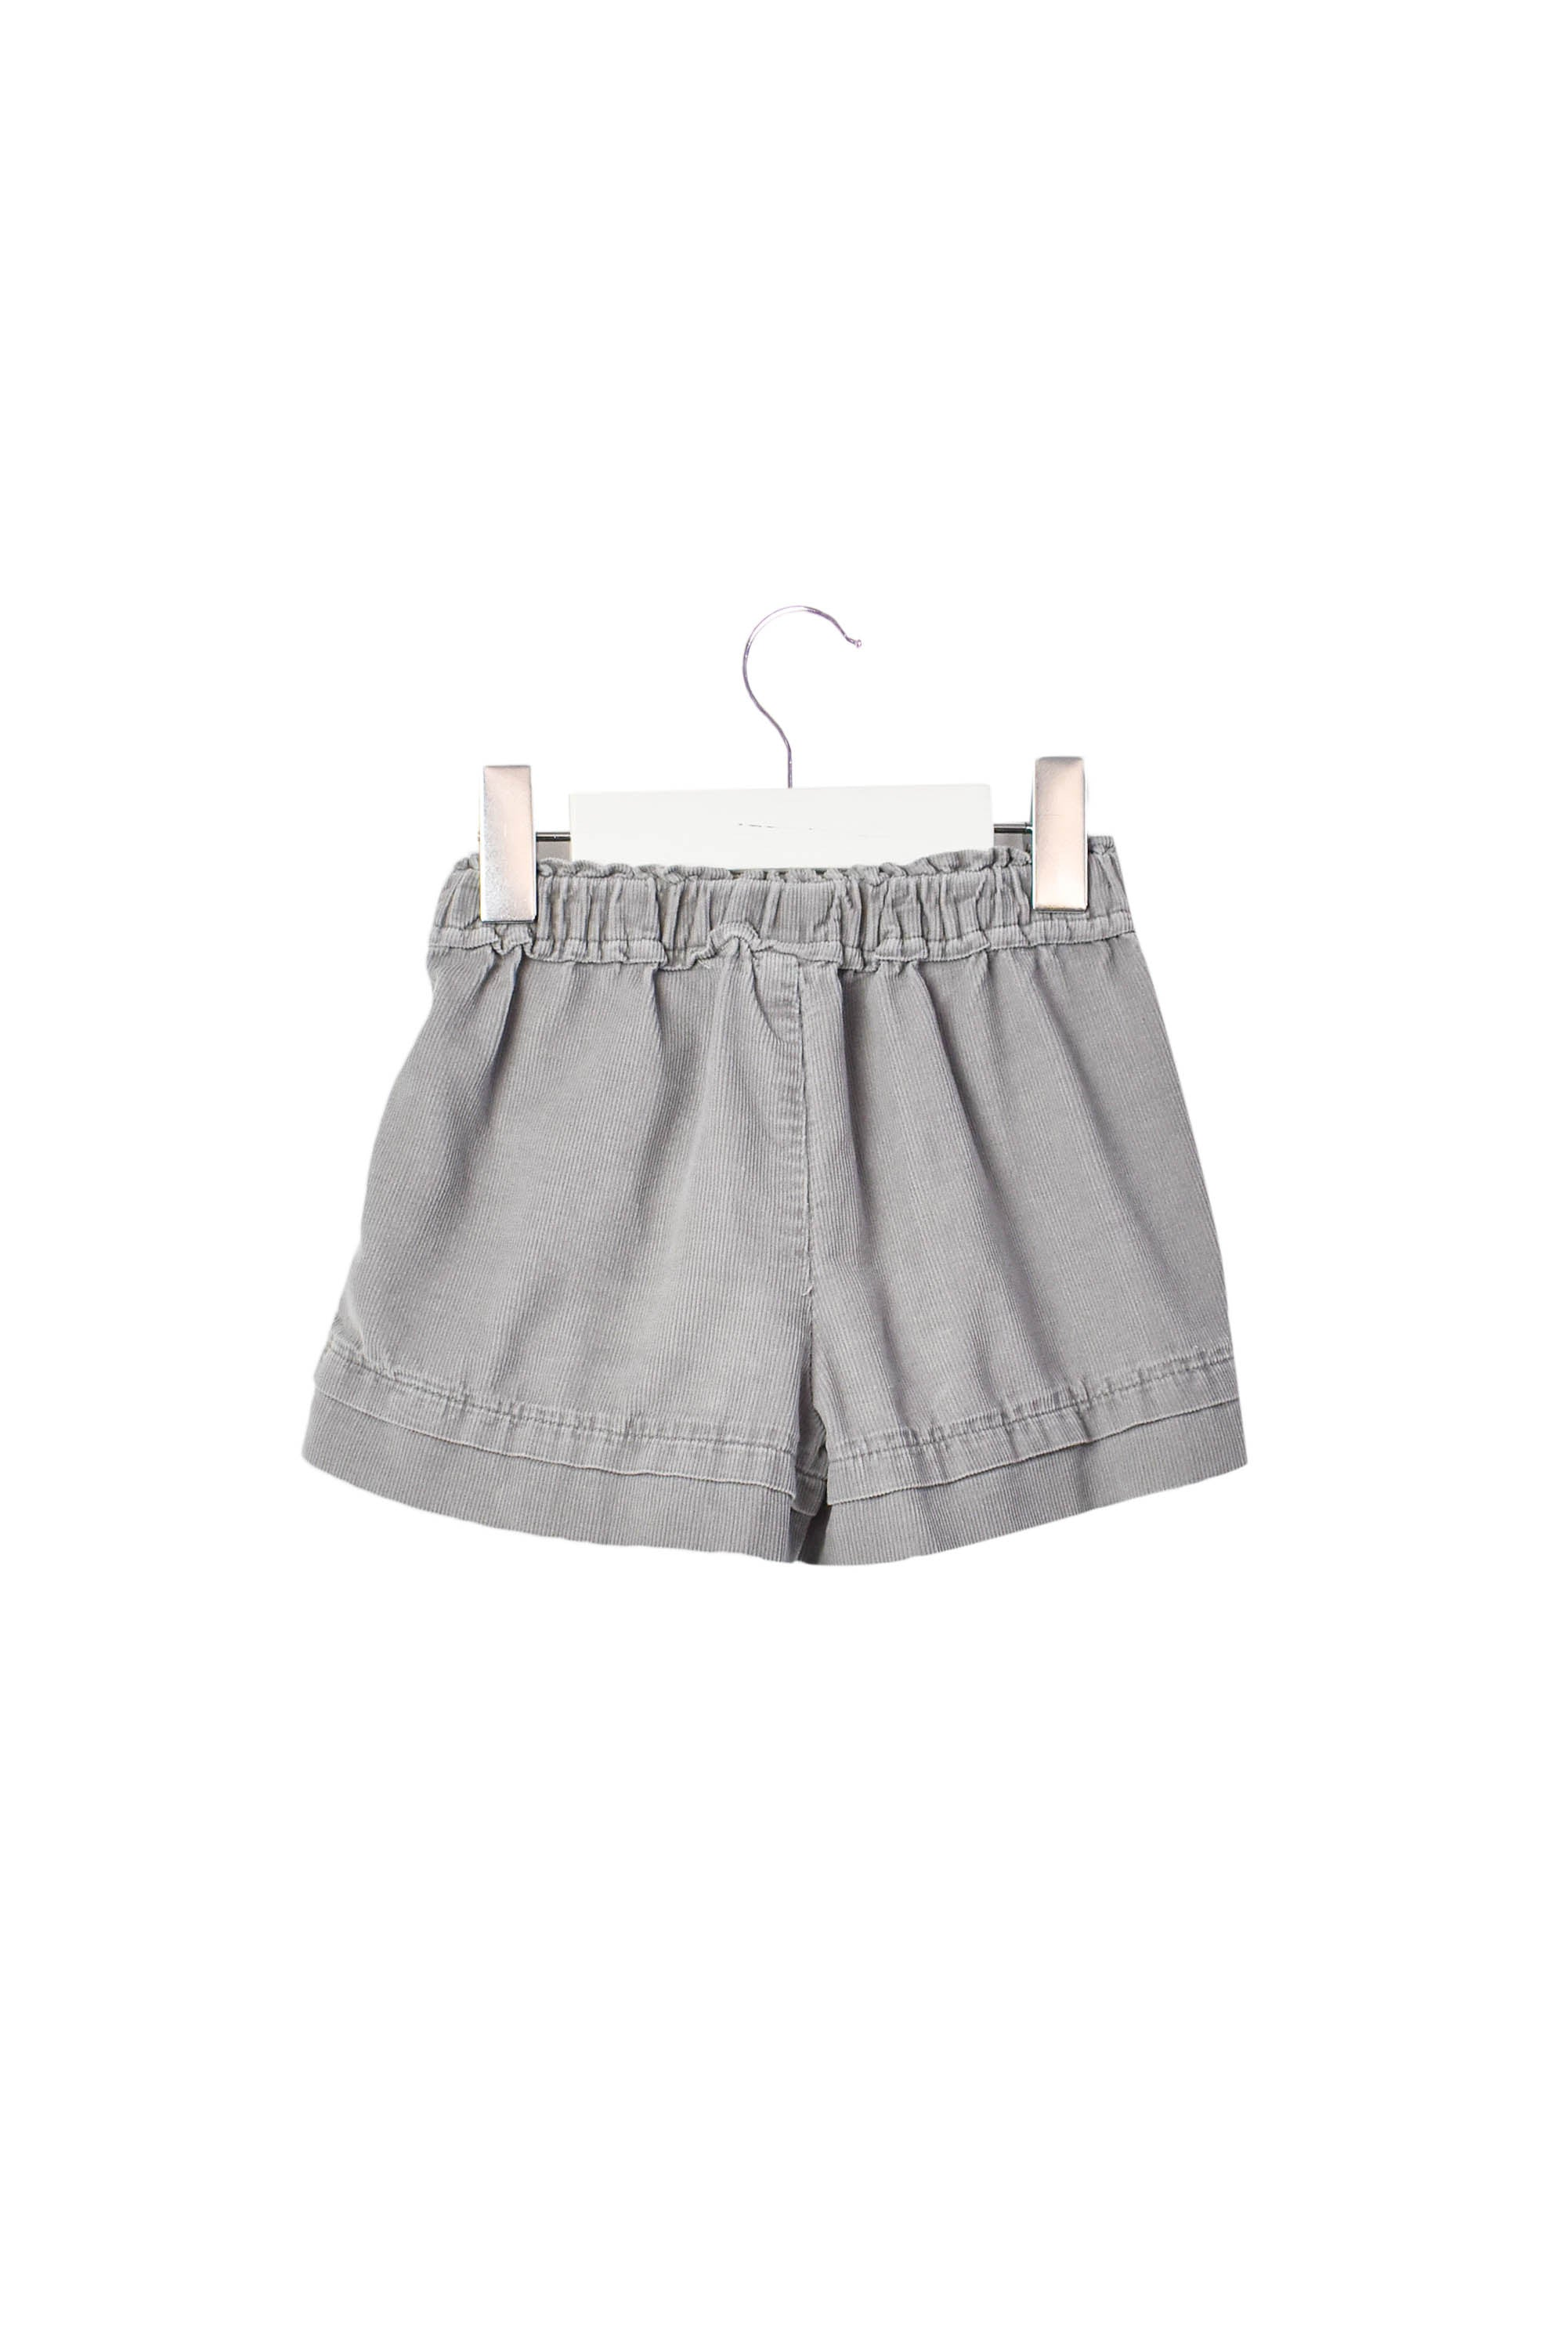 10001487 Juliet & The Band Kids~Shorts 4T, Juliet & The Band Retykle | Online Baby & Kids Clothing Hong Kong